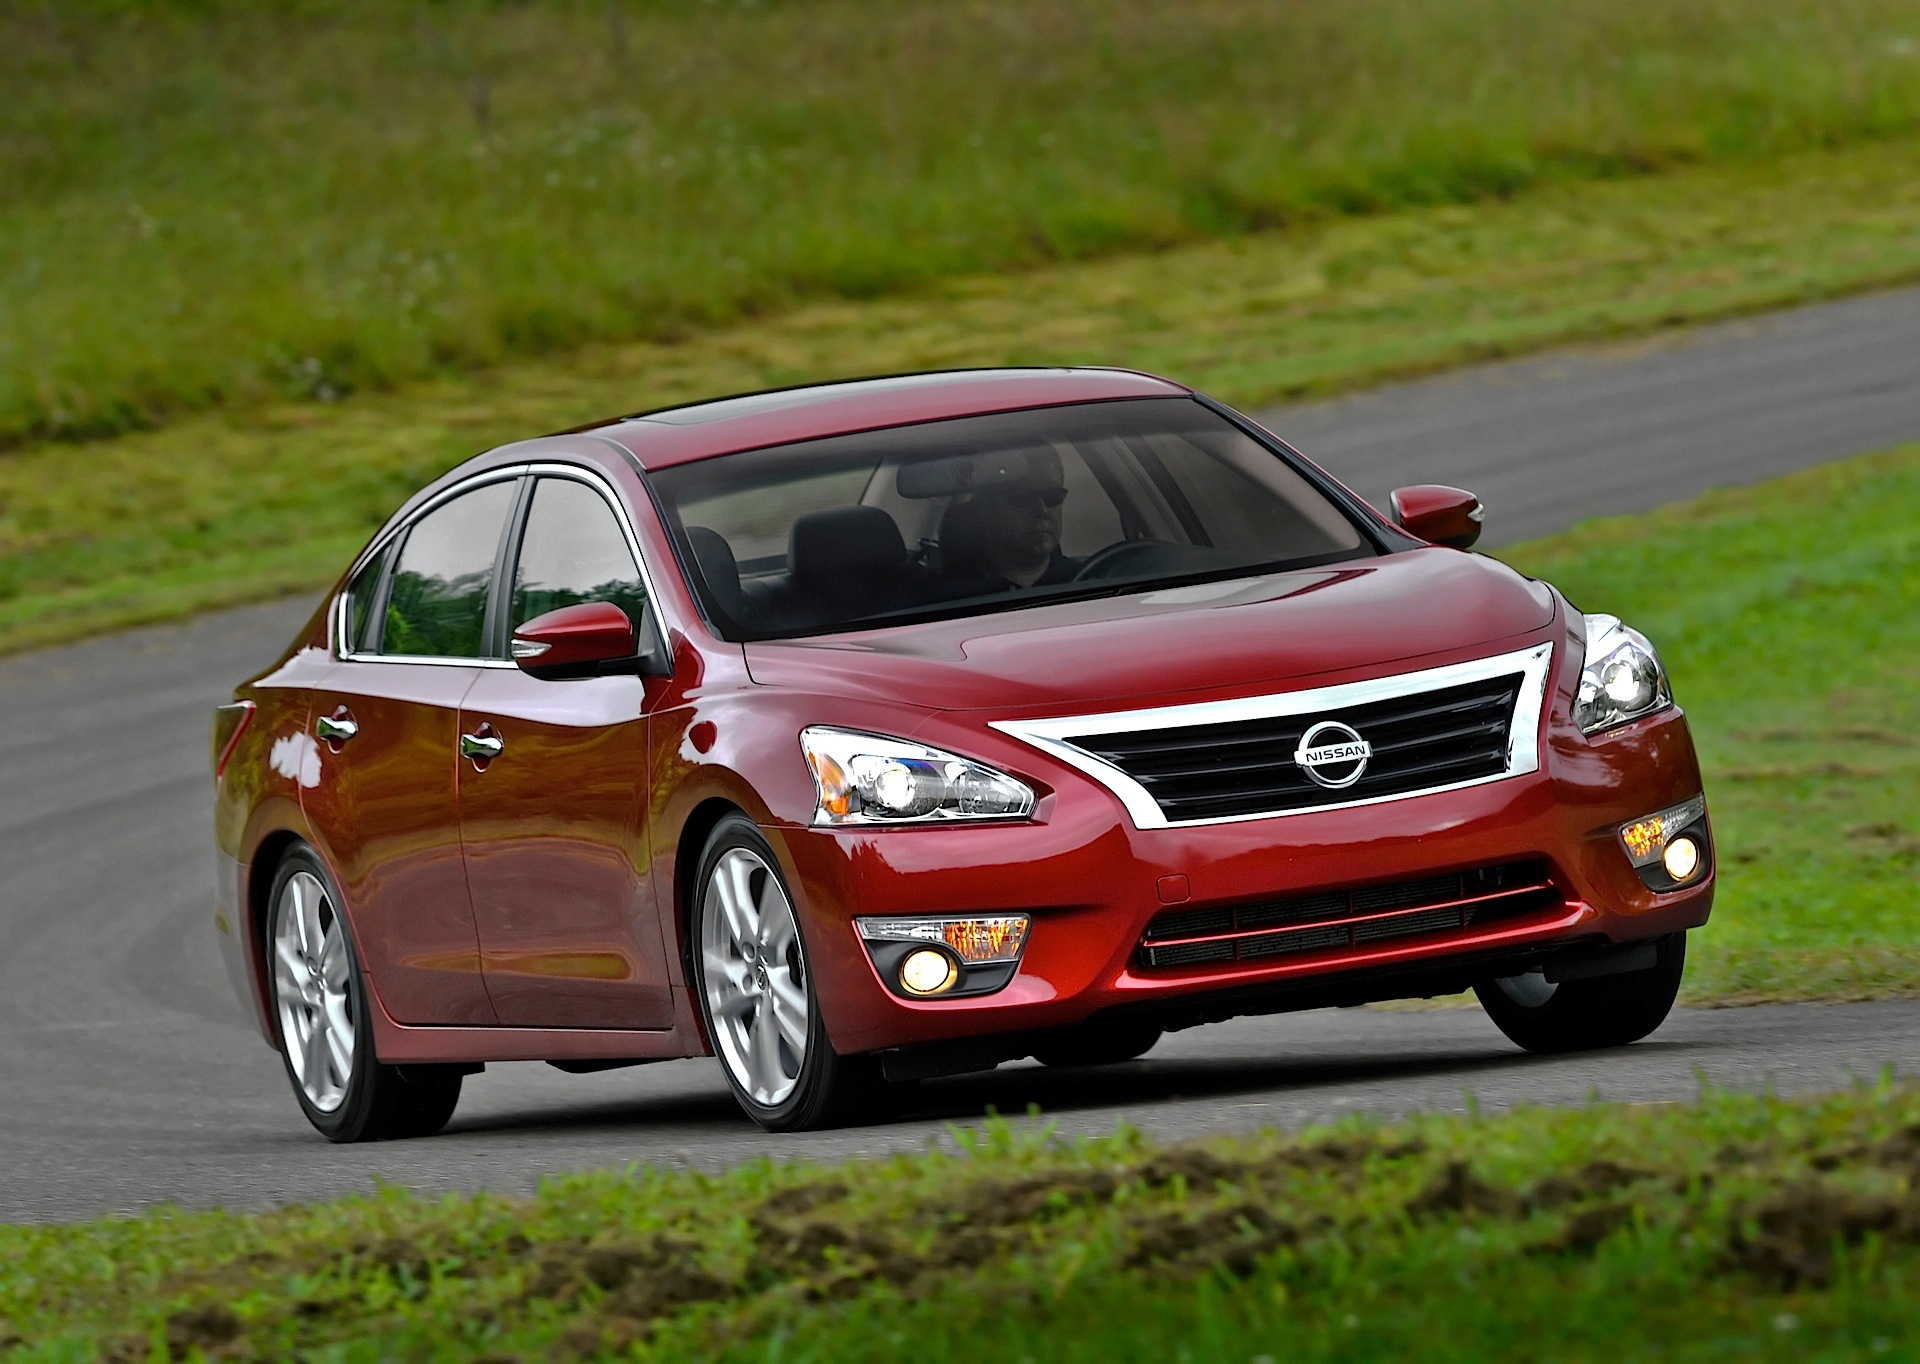 nissan altima sedan cars autoevolution